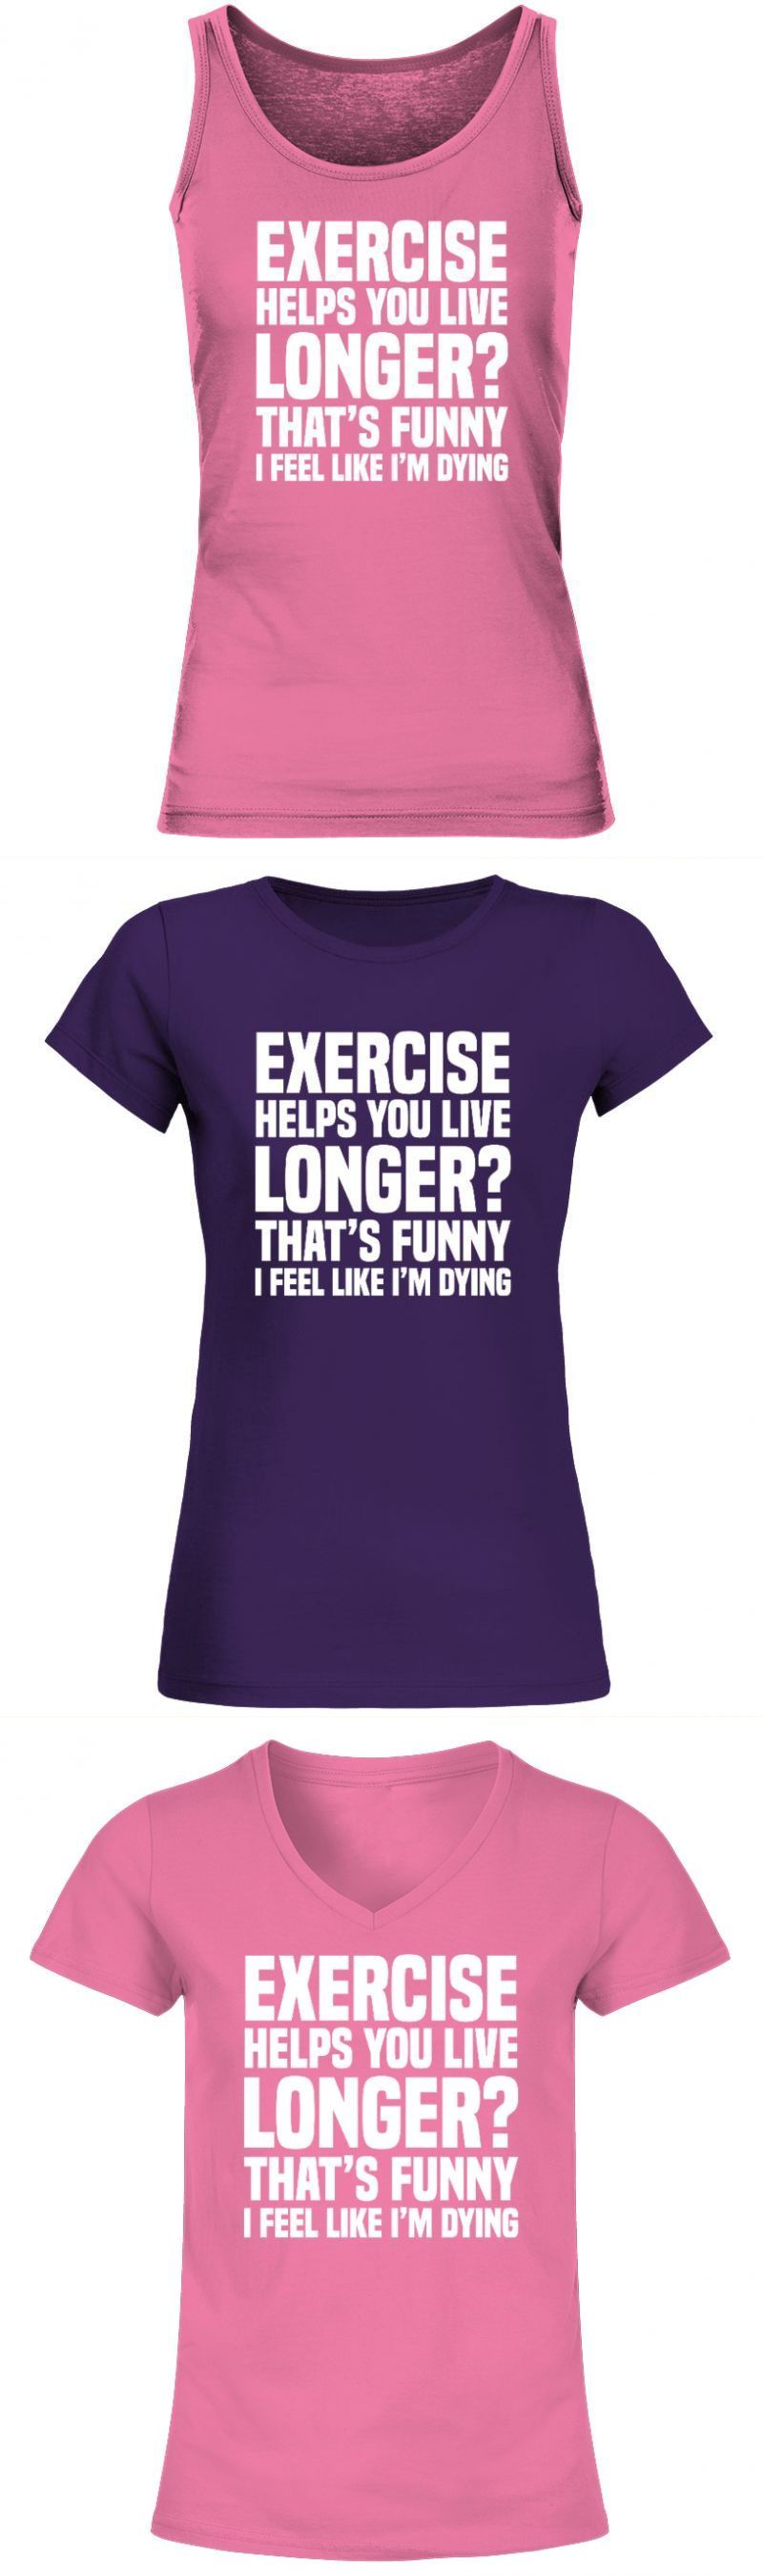 Planet fitness t shirt free exercise helps you live longer jehovah's fitness t shirt #planet # ...